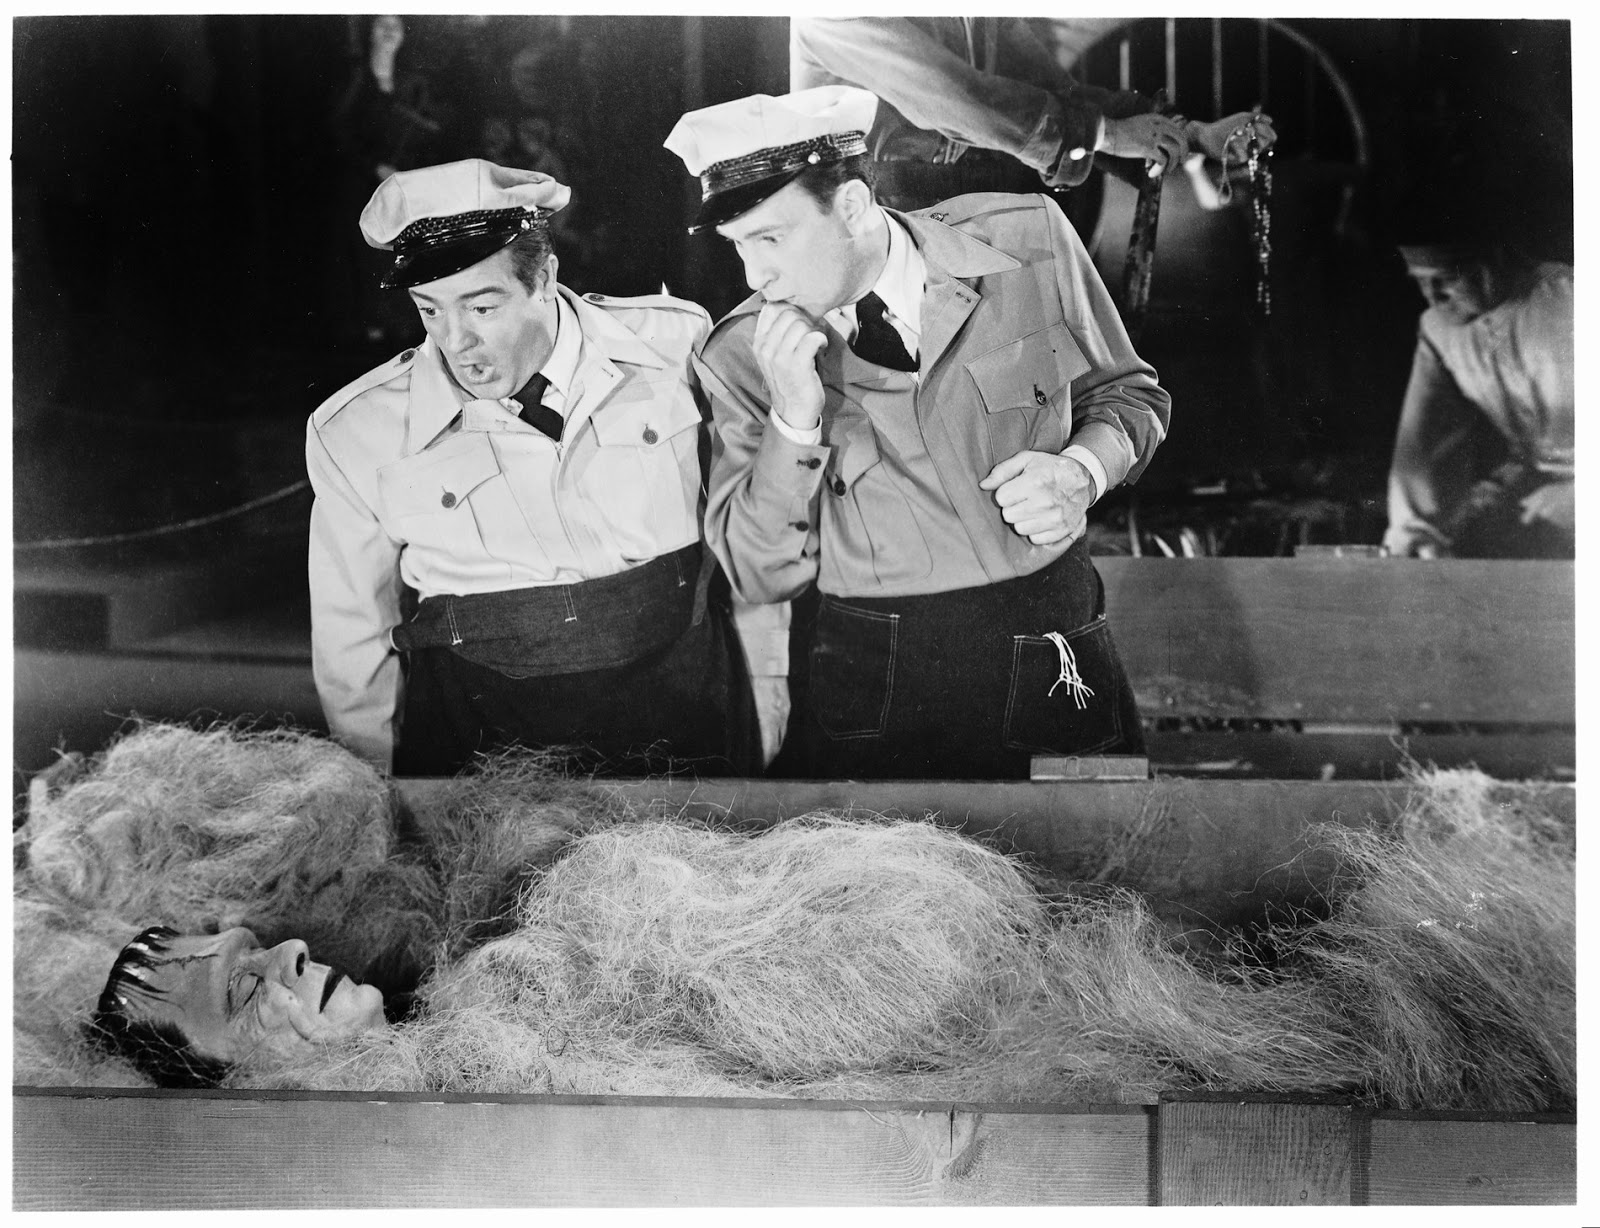 abbott and costello meet the ghosts 1948